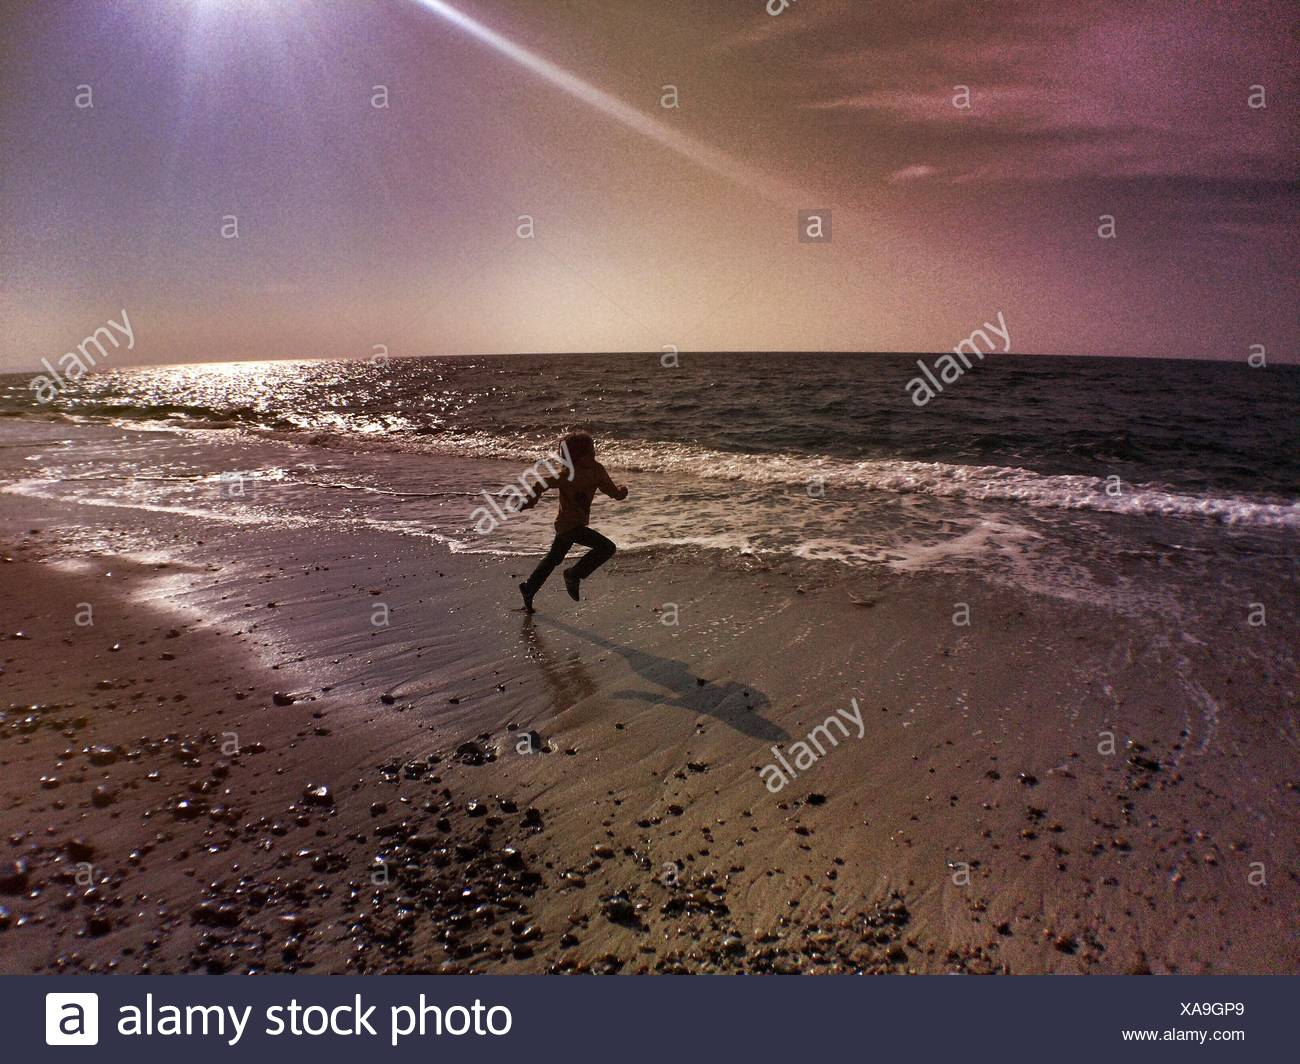 Boy Running On Beach Against Sky During Sunny Day - Stock Image